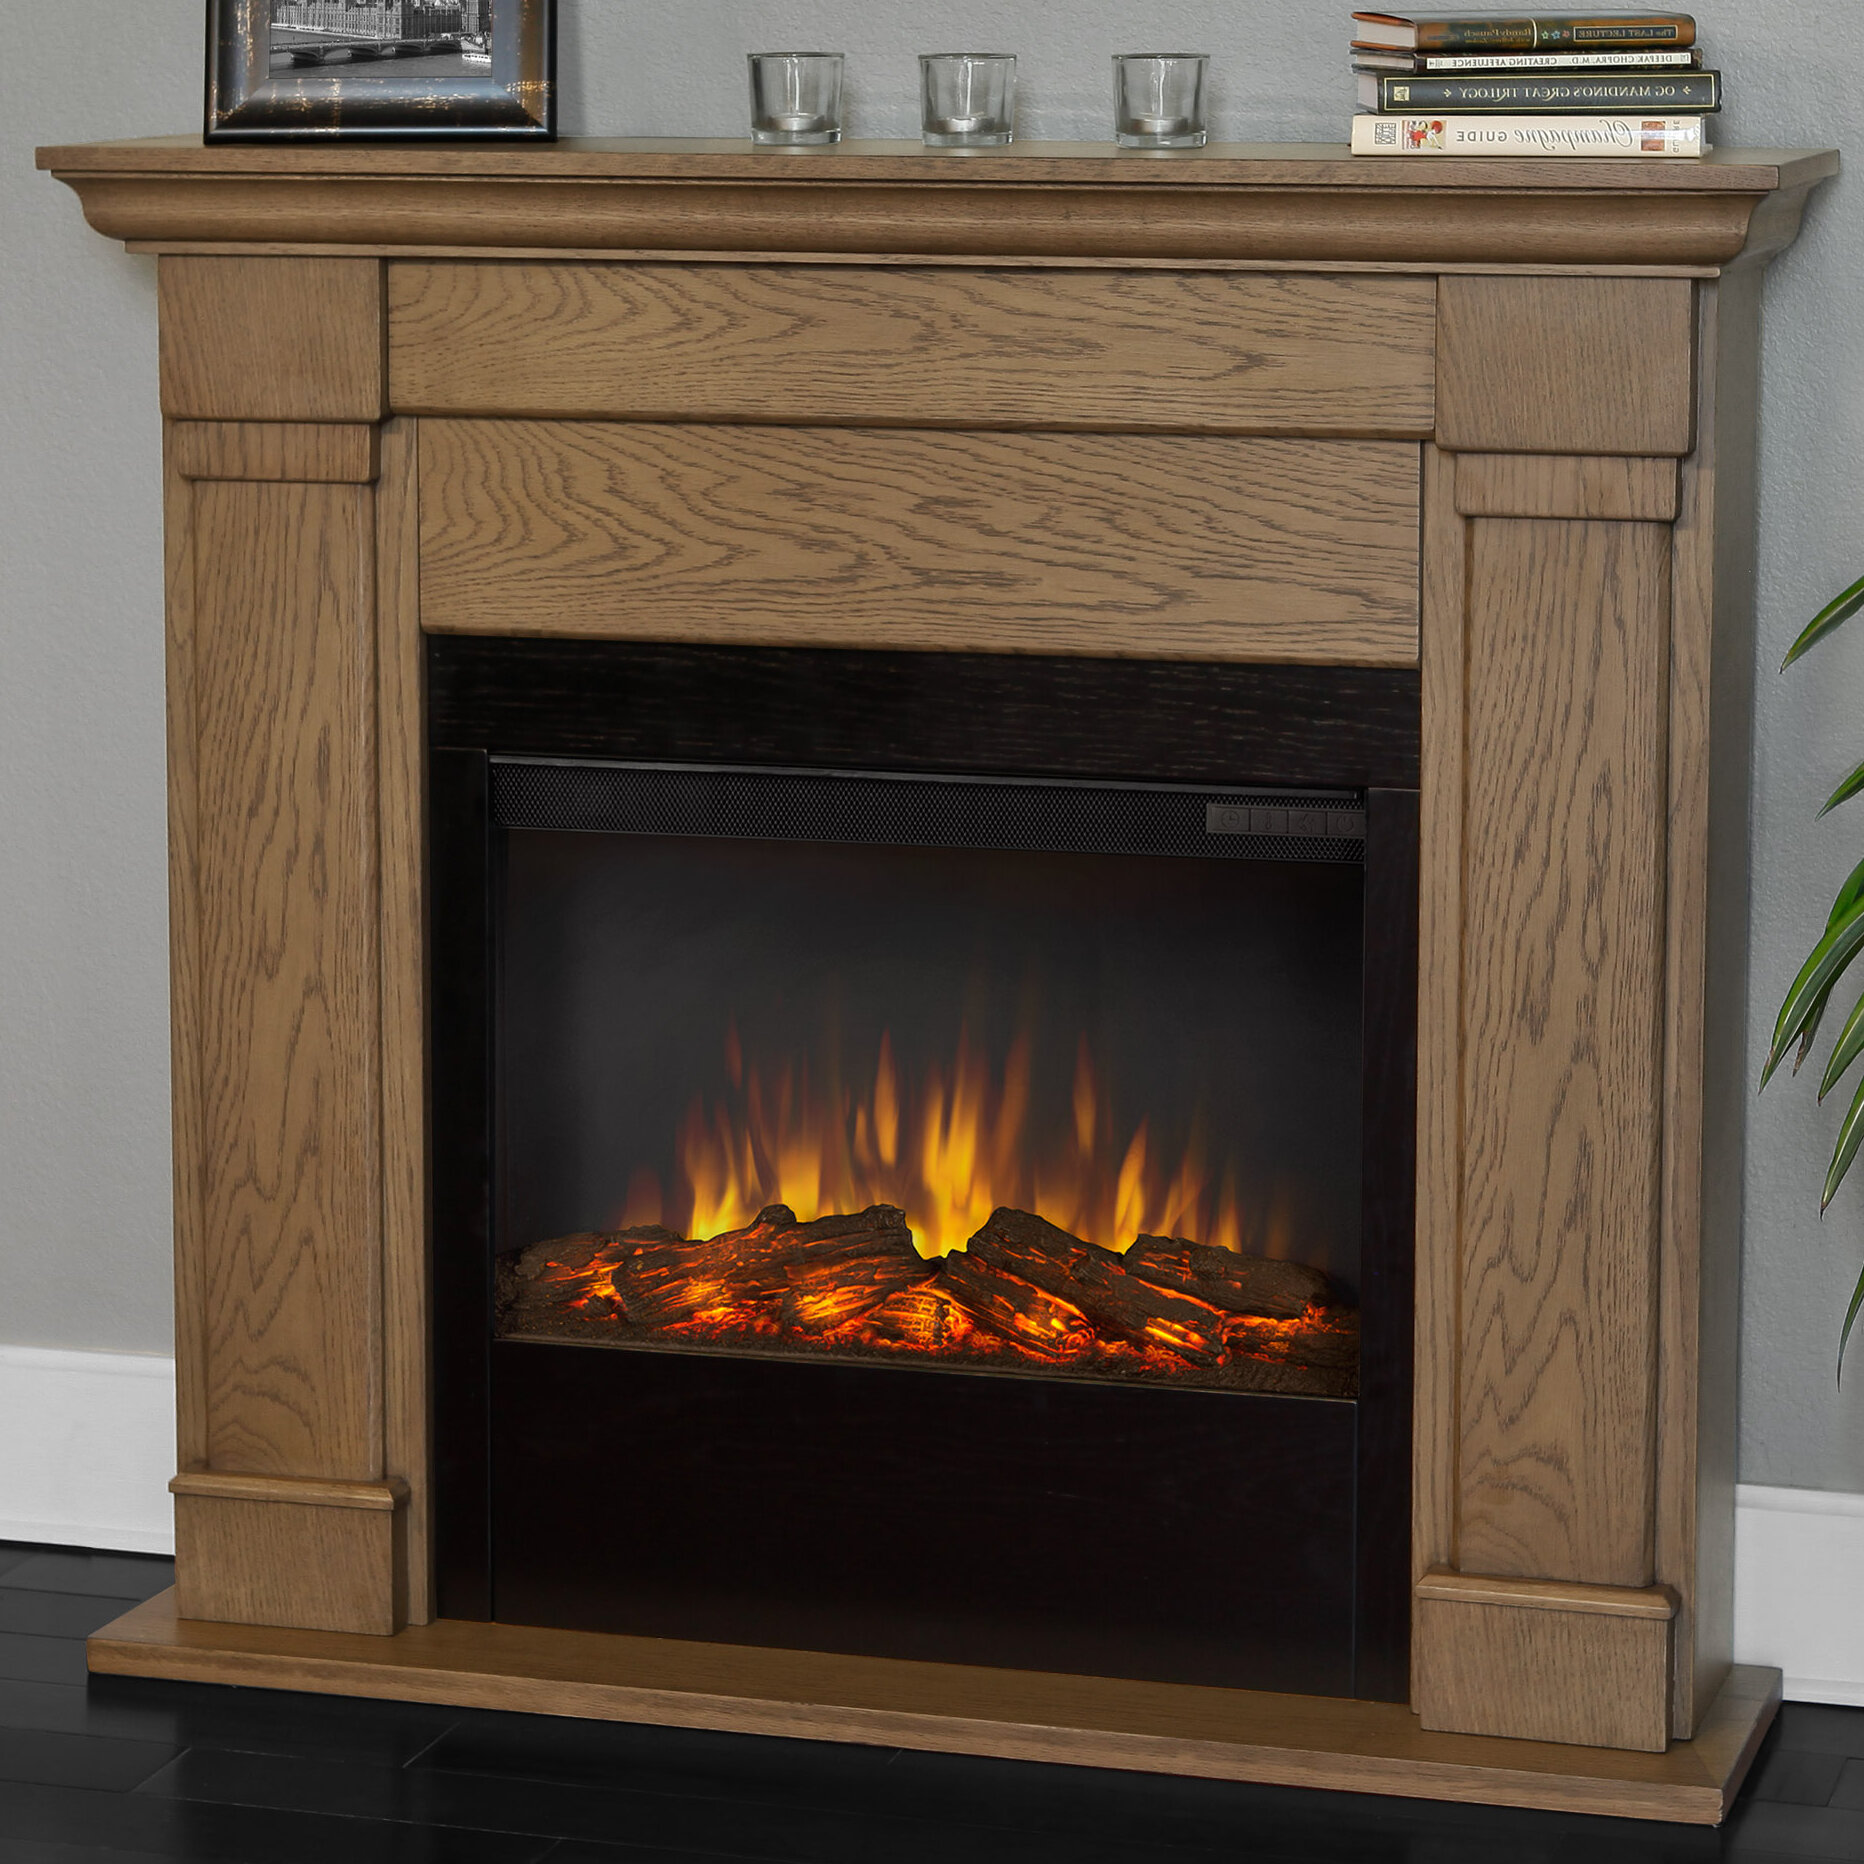 Real Flame Slim Wall Mounted Electric Fireplace Amp Reviews